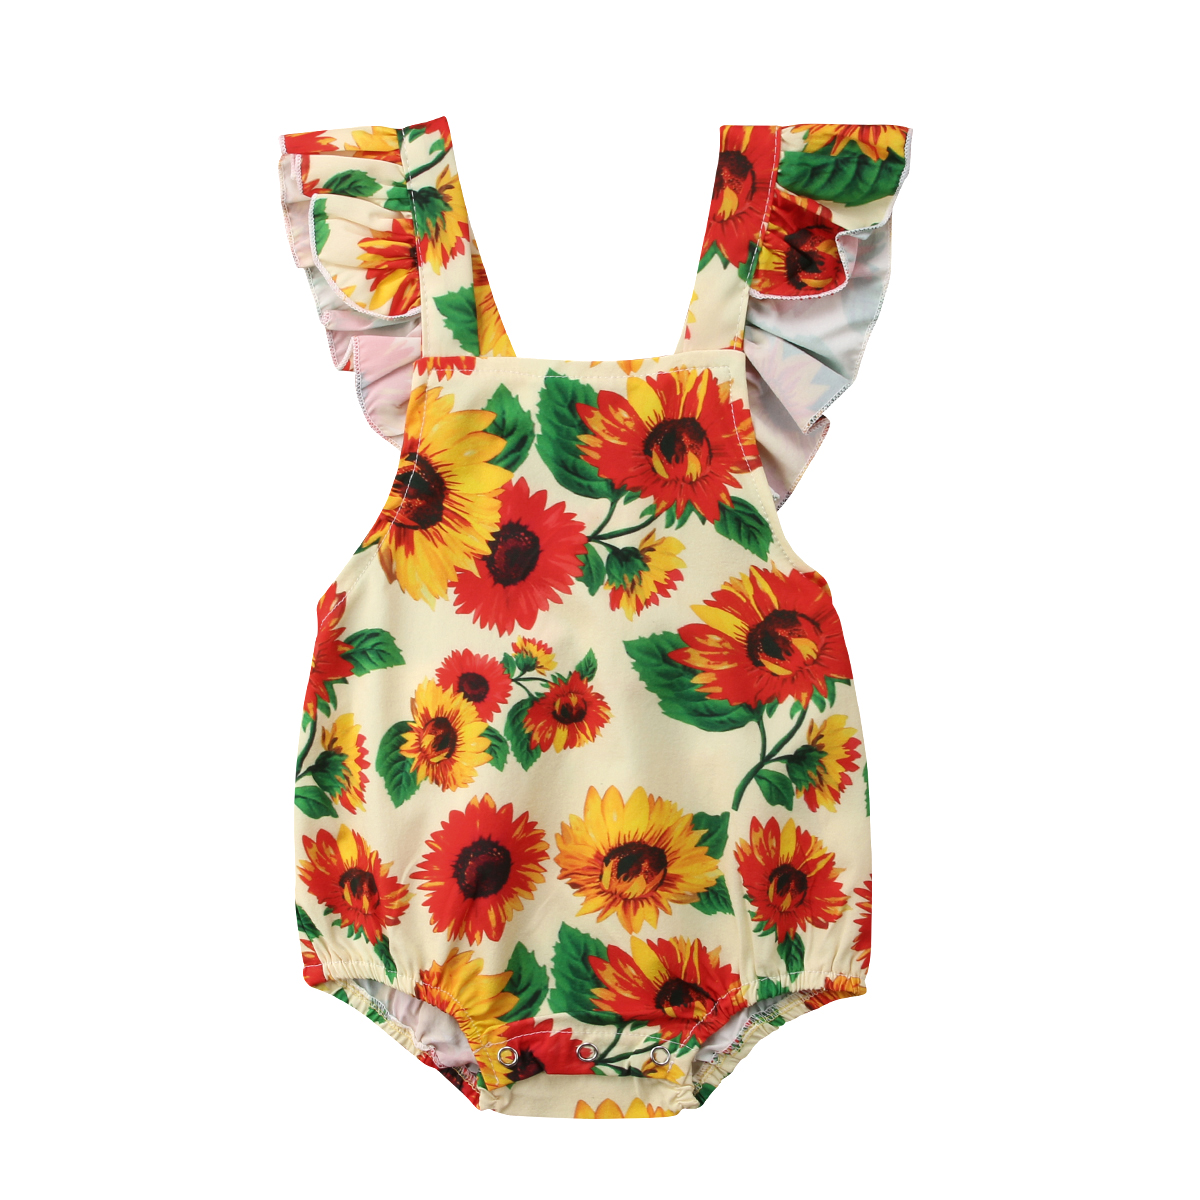 Summer Newborn Baby Girl Floral Romper Backless Clothes Sunsuit Outfits 0-24M